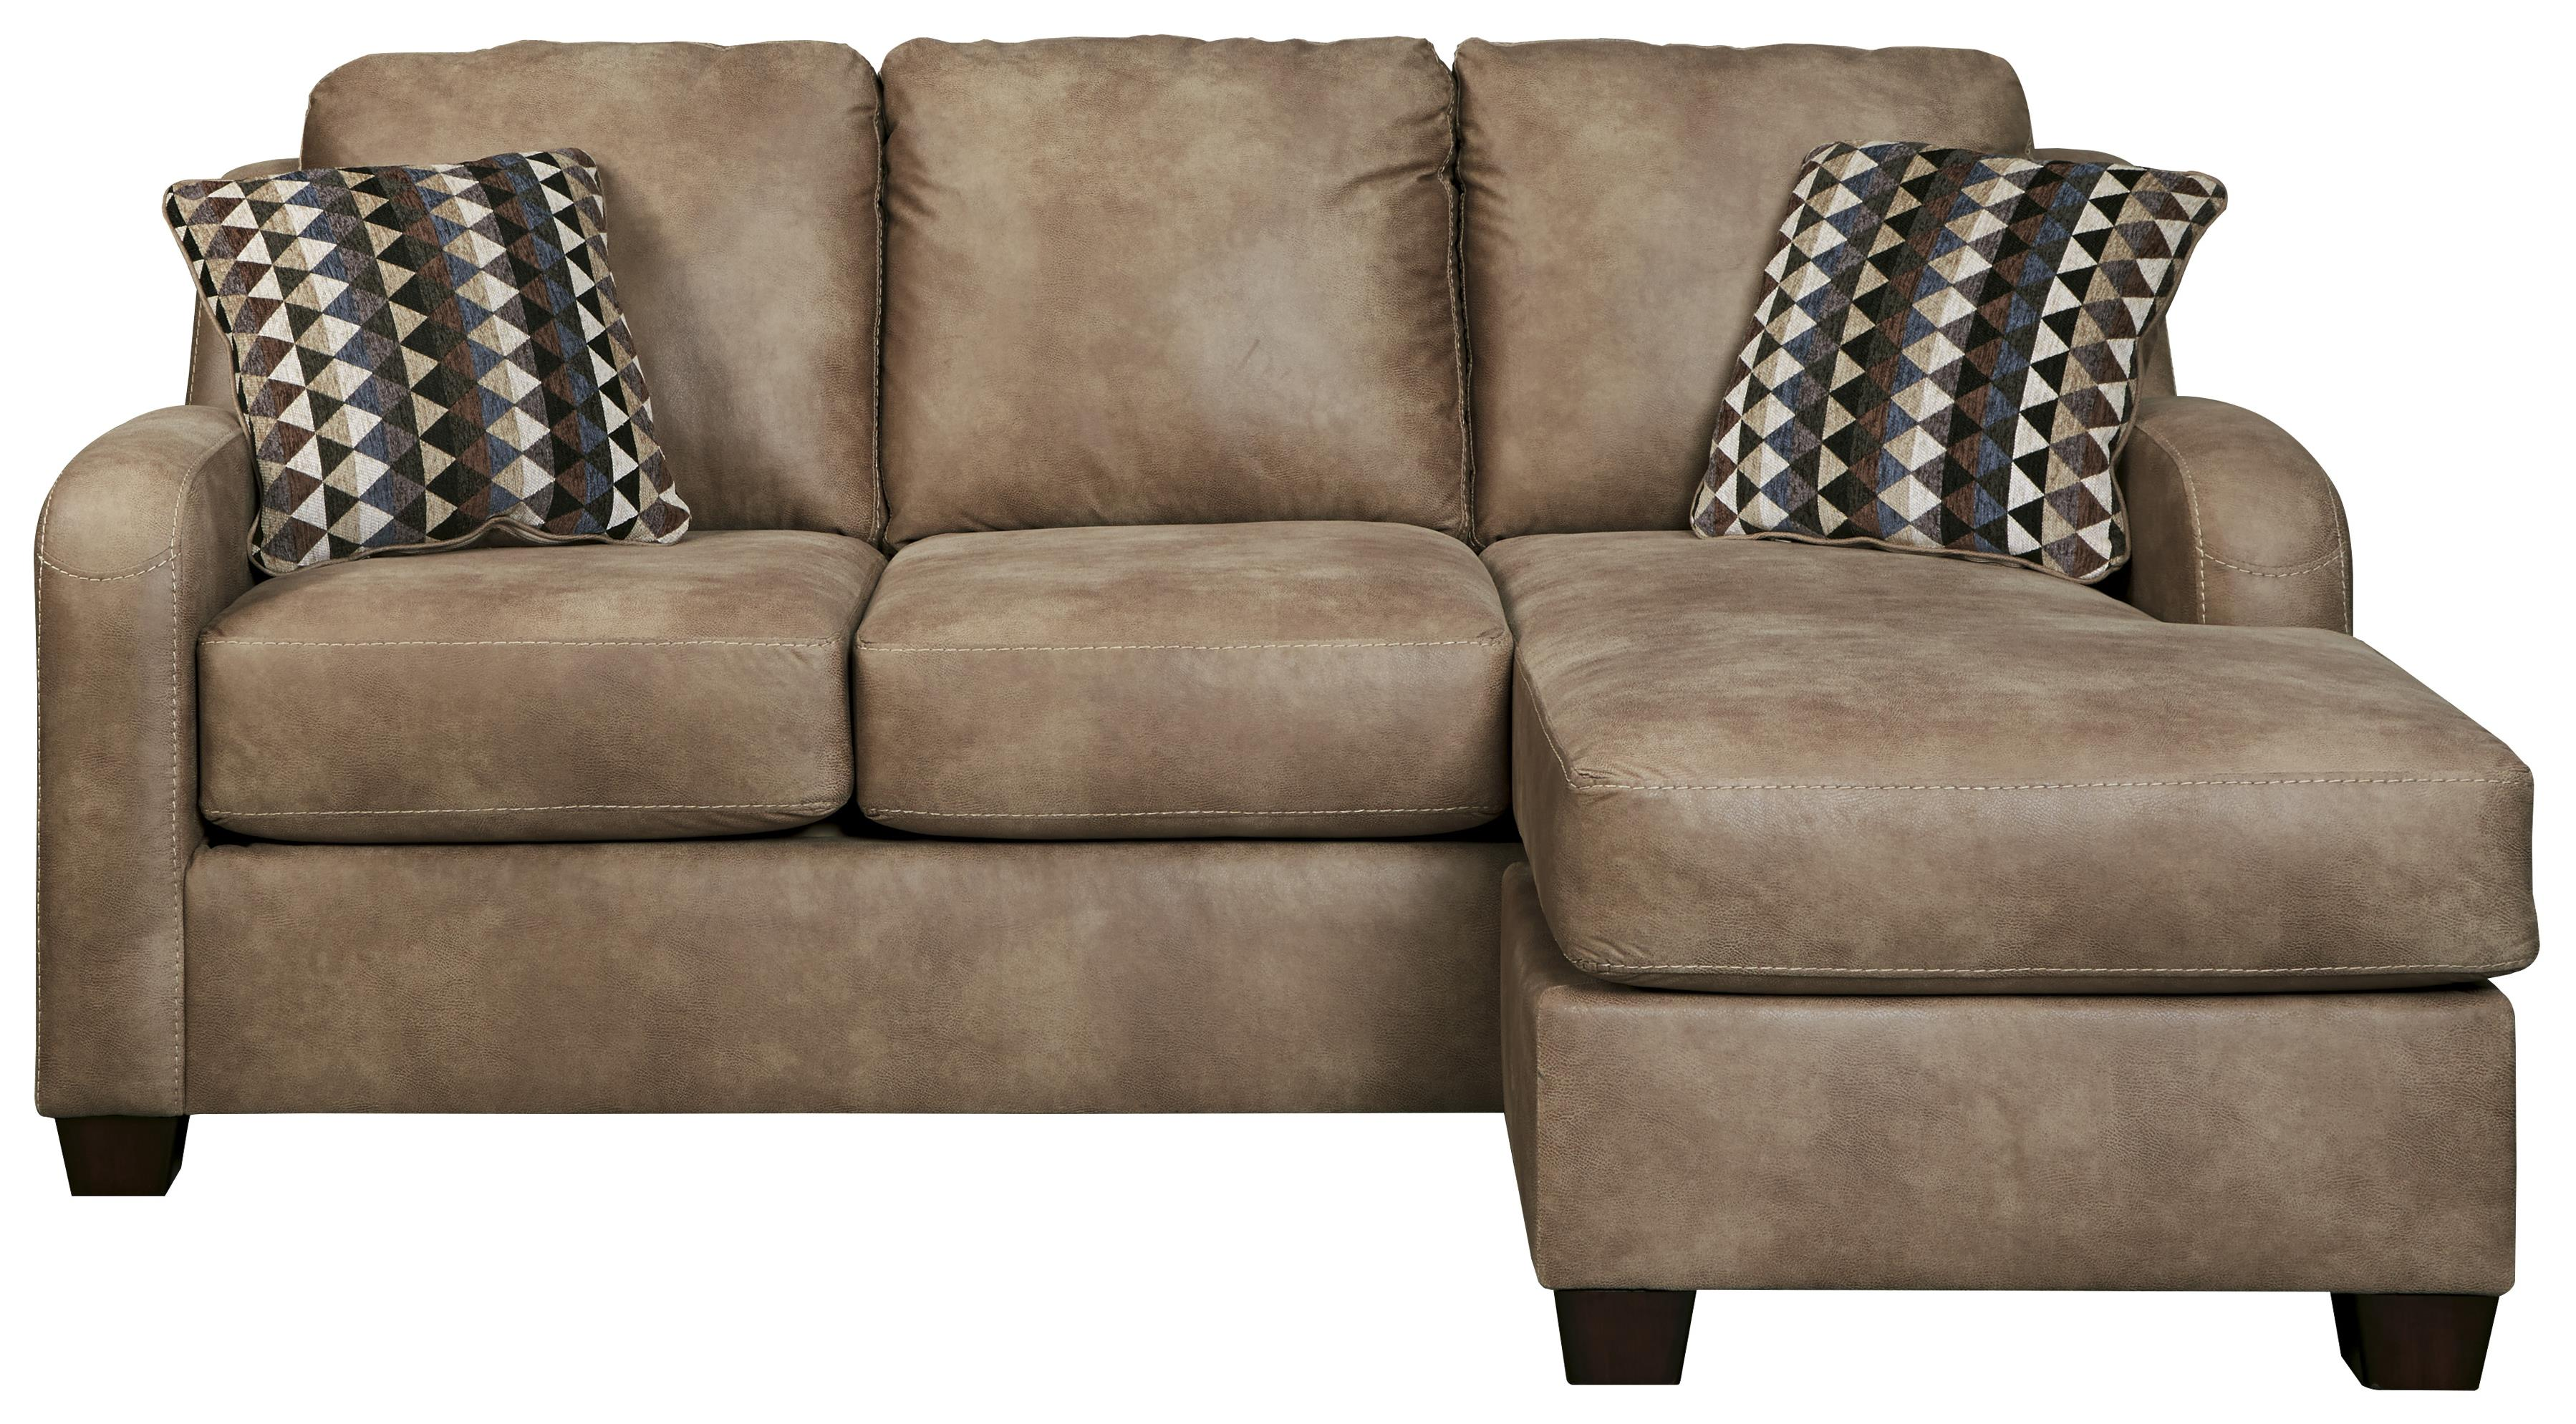 Leather Sofa With Chaise Contemporary Faux Leather Sofa Chaise By Benchcraft Wolf